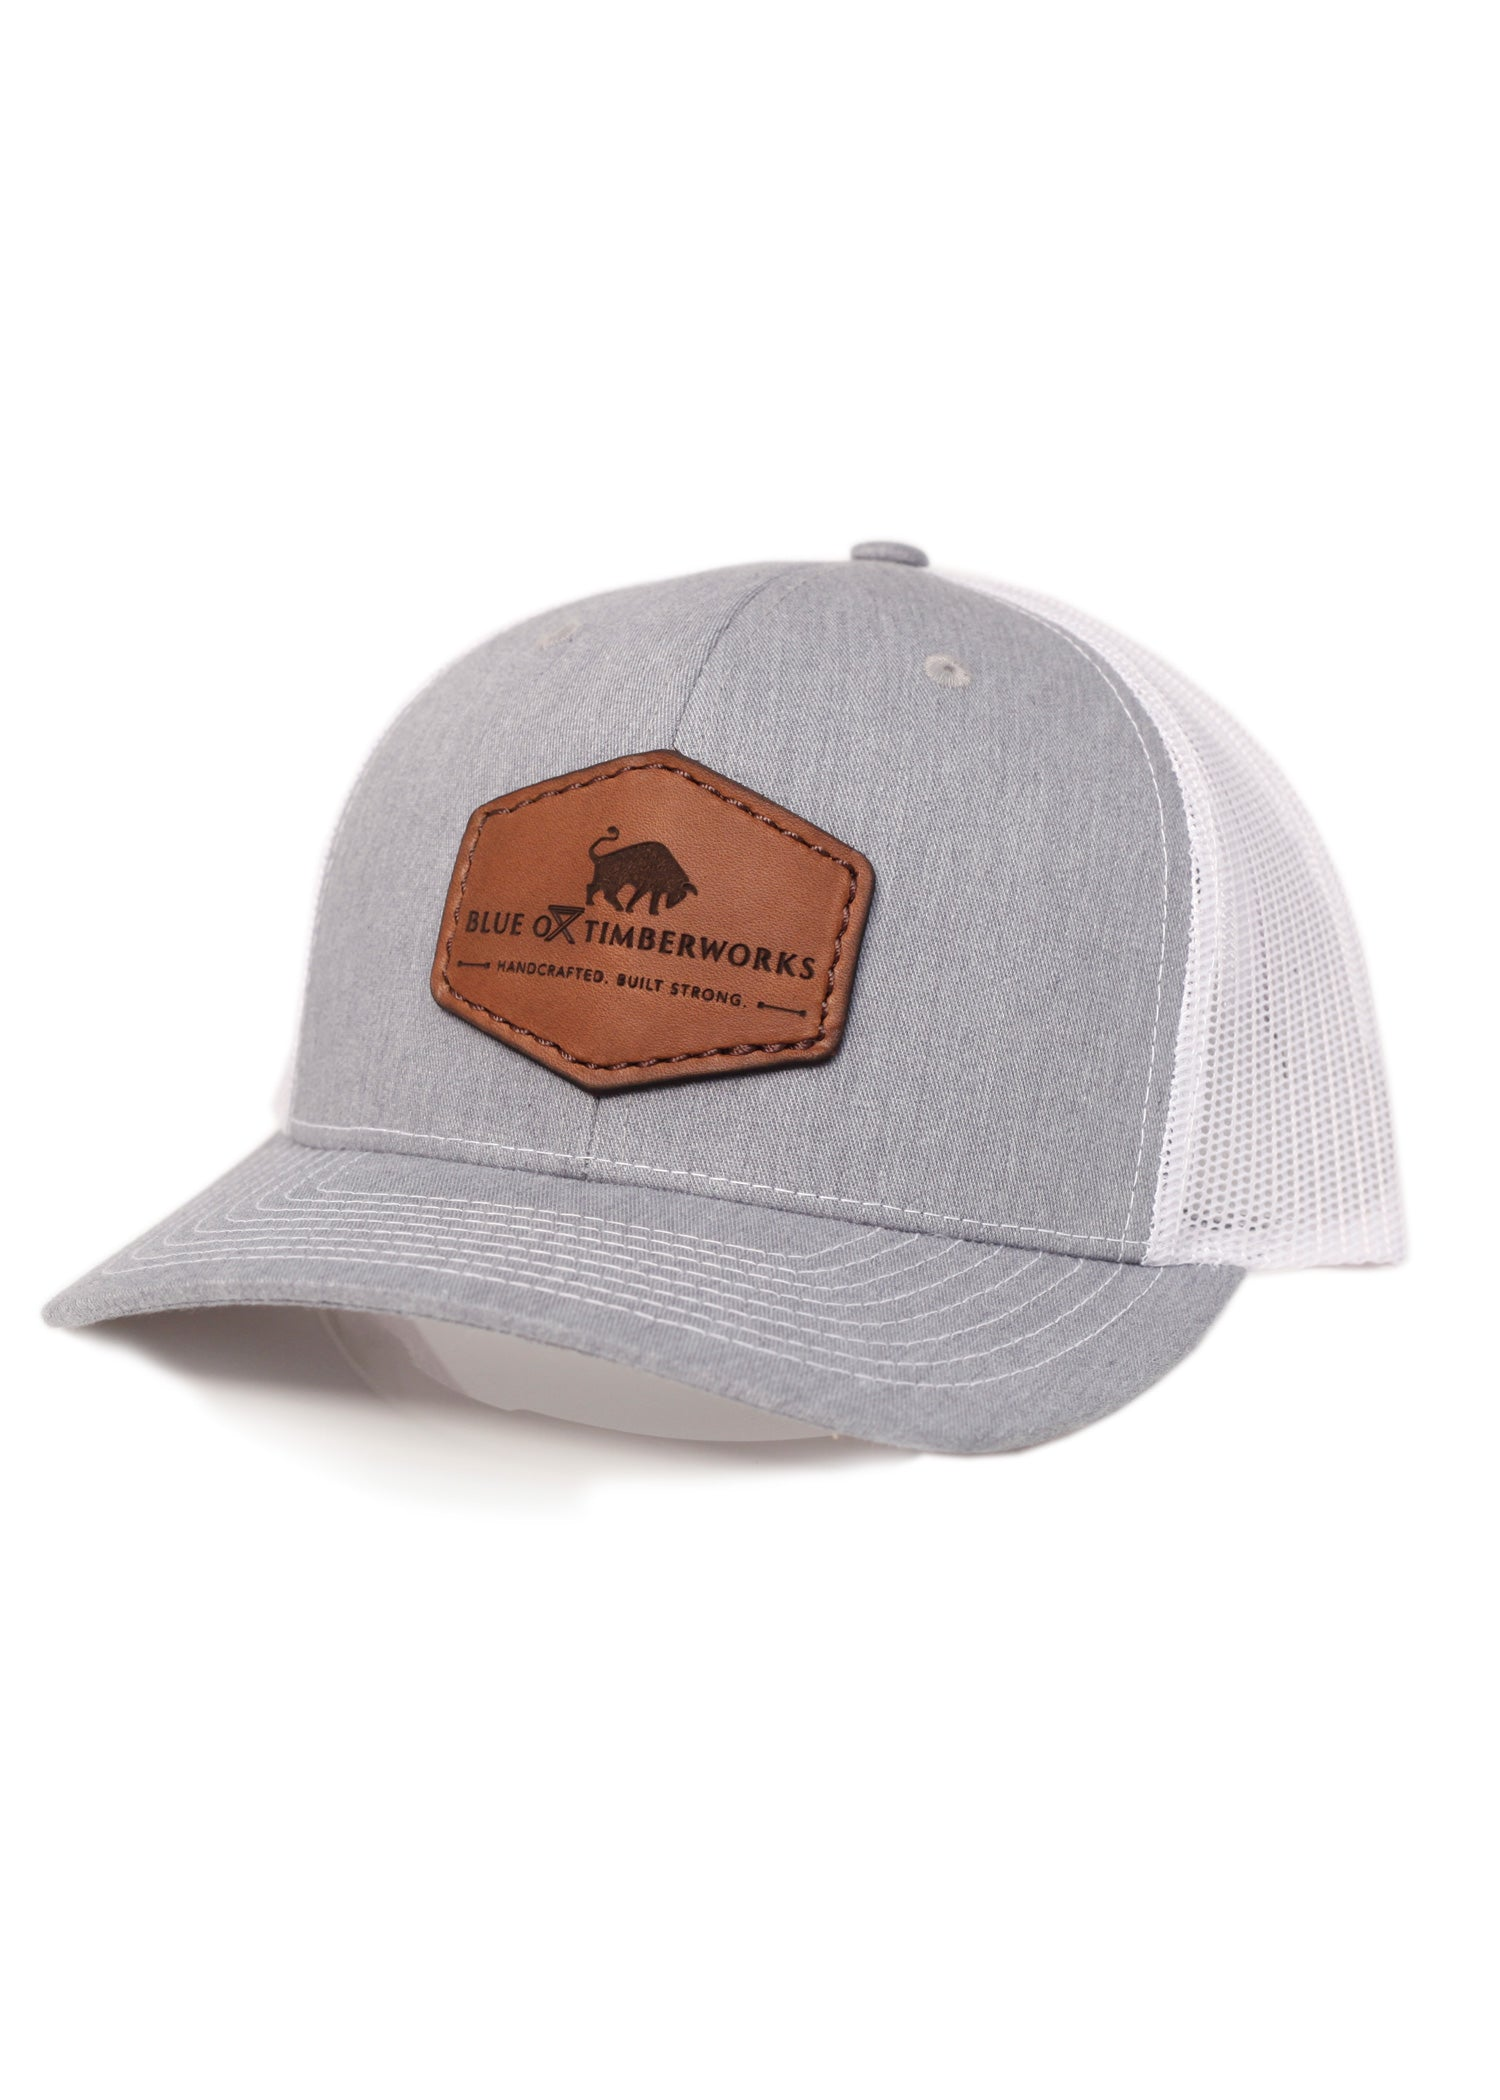 Blue Ox Timberworks - Richardson 112 Heather/White